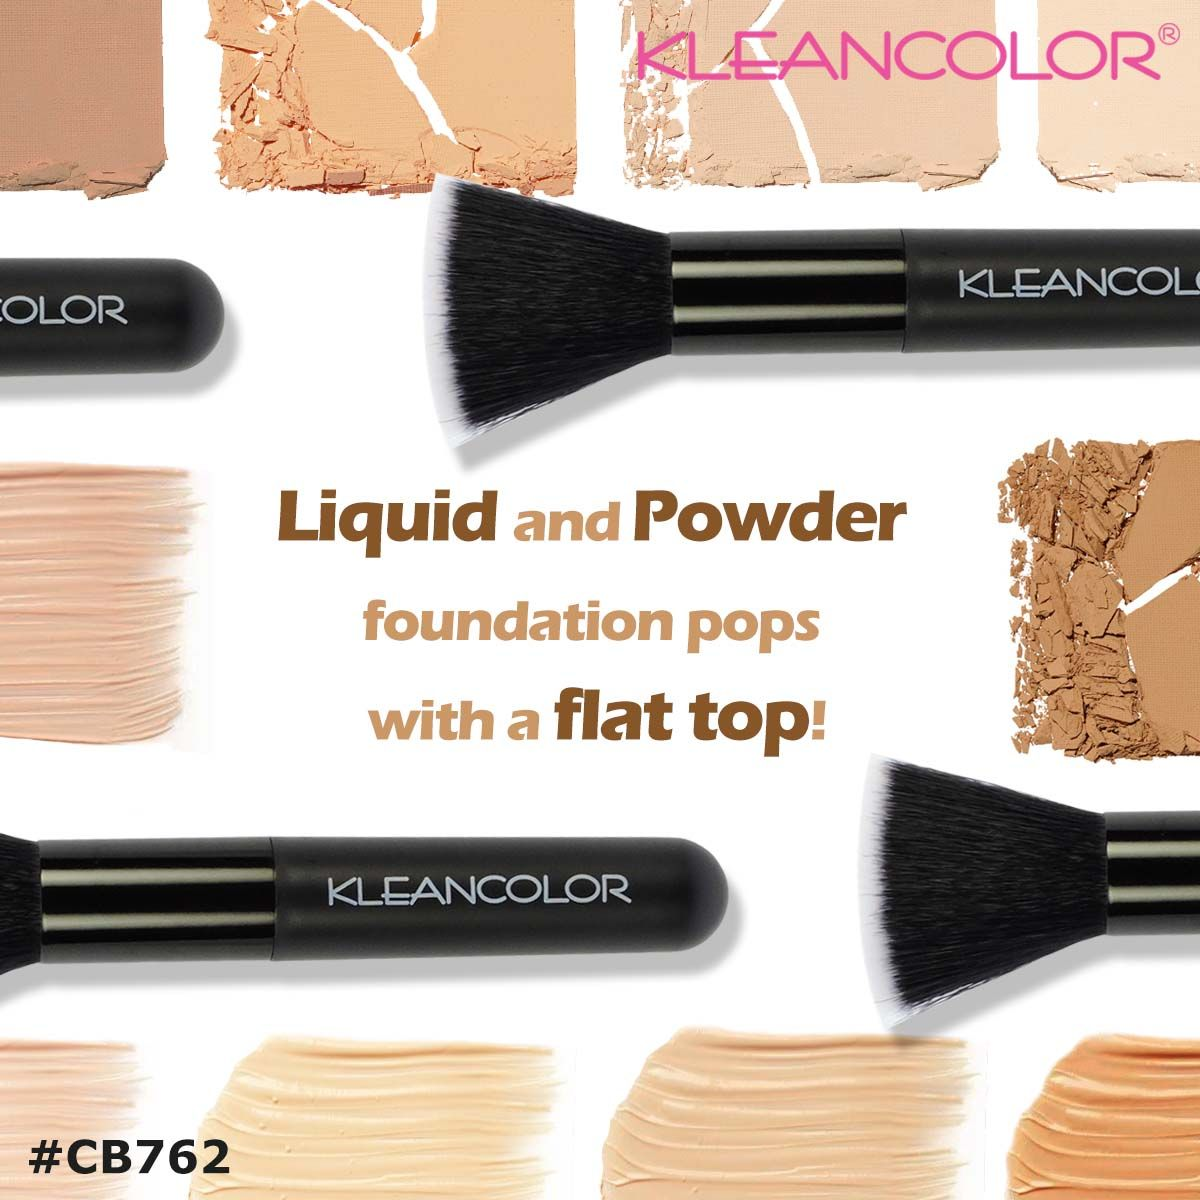 Our super soft Flat Top Brush (CB762) sits flush against the skin and buffs in liquid or powder foundation evenly and flawlessly!